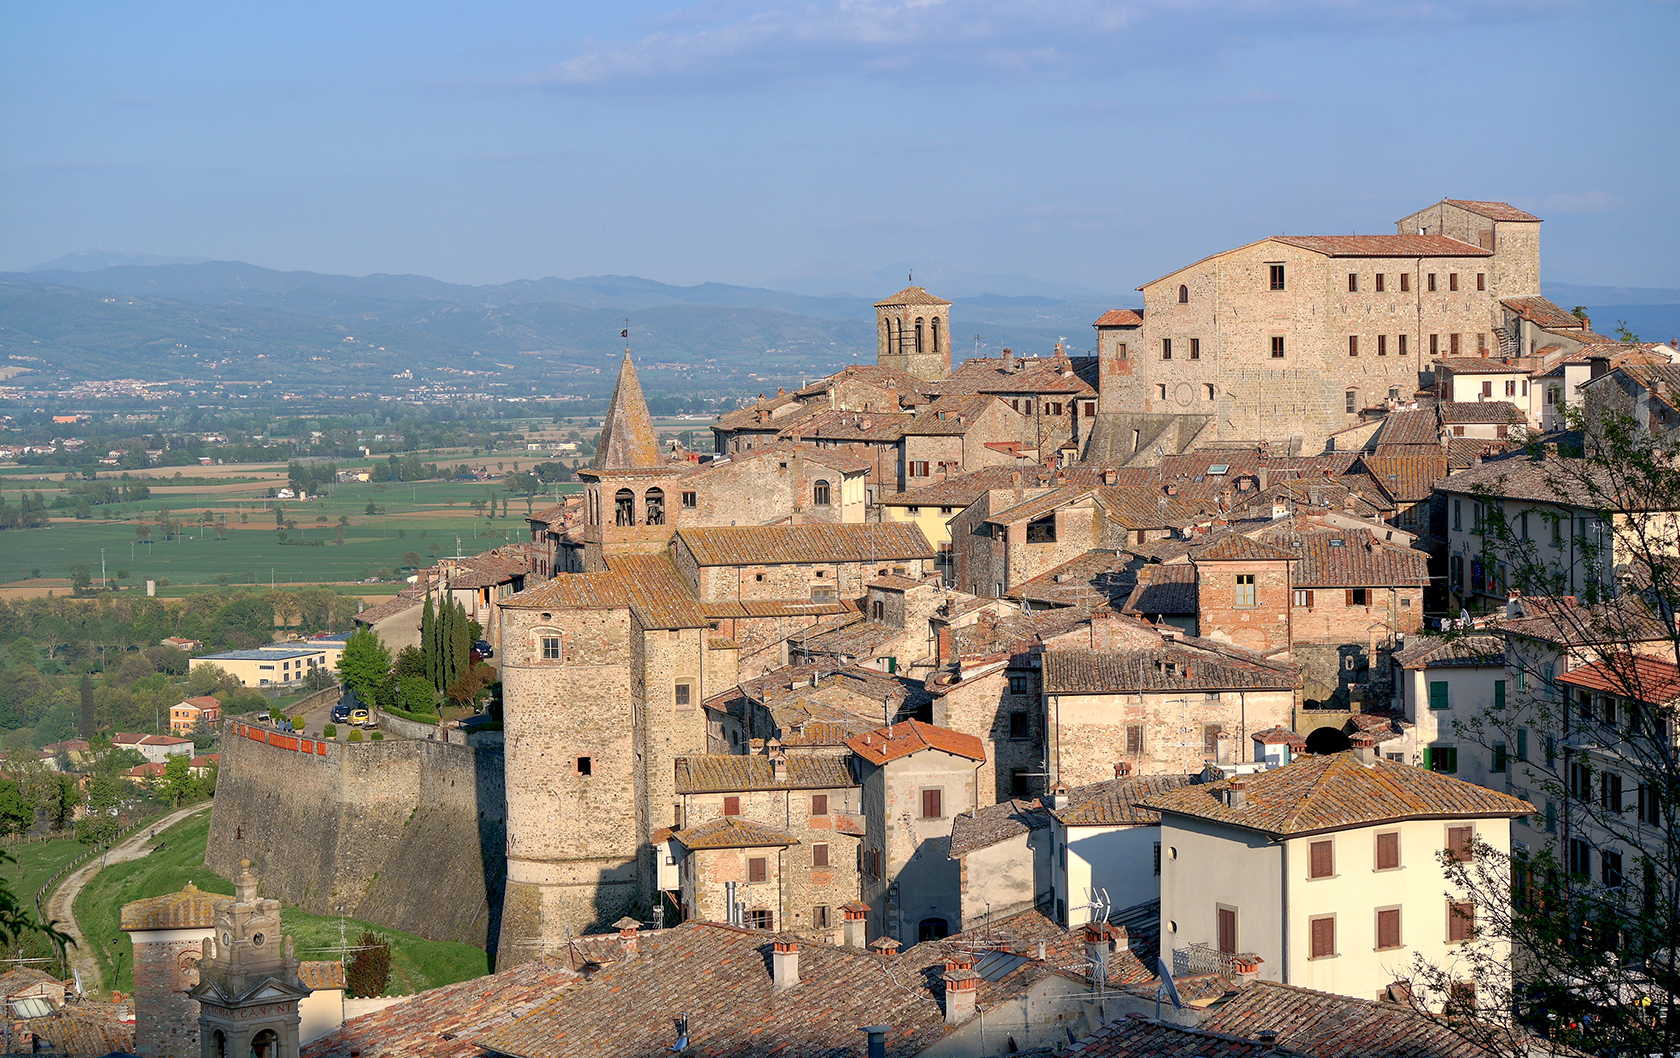 View of Anghiari in Tuscany